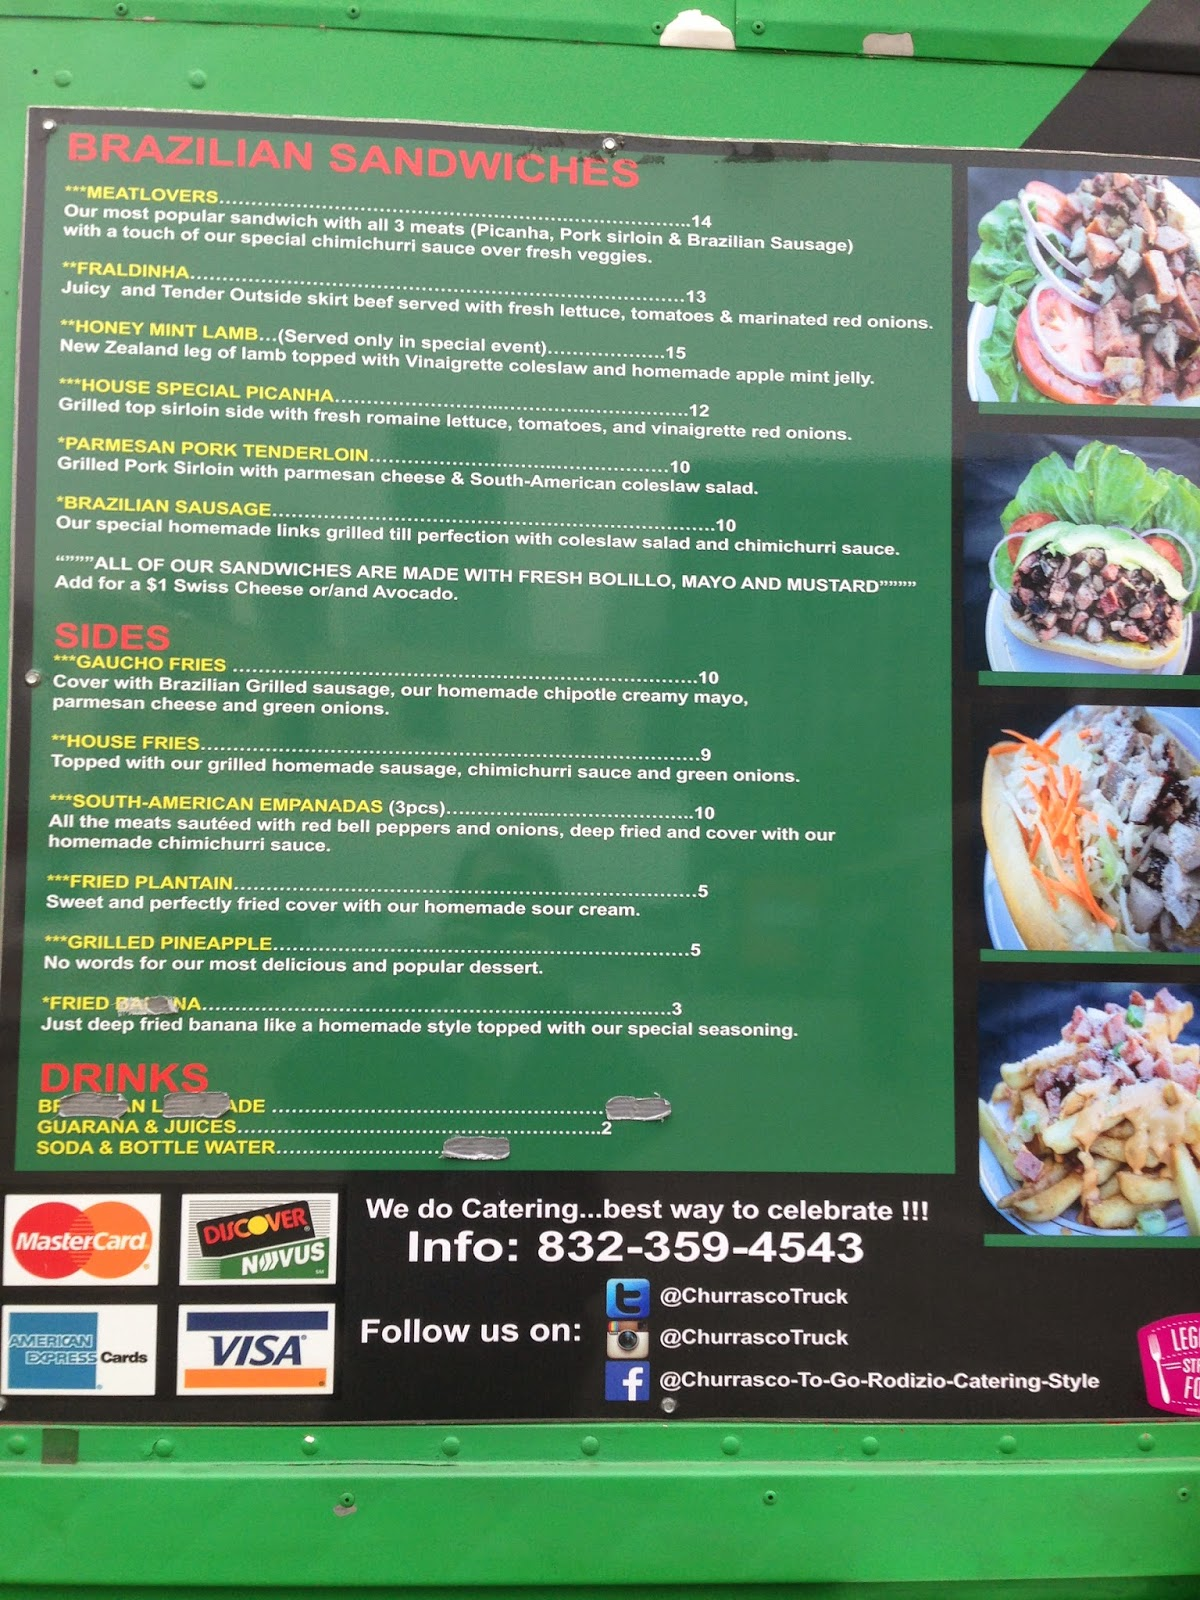 Churrasco Truck Menu